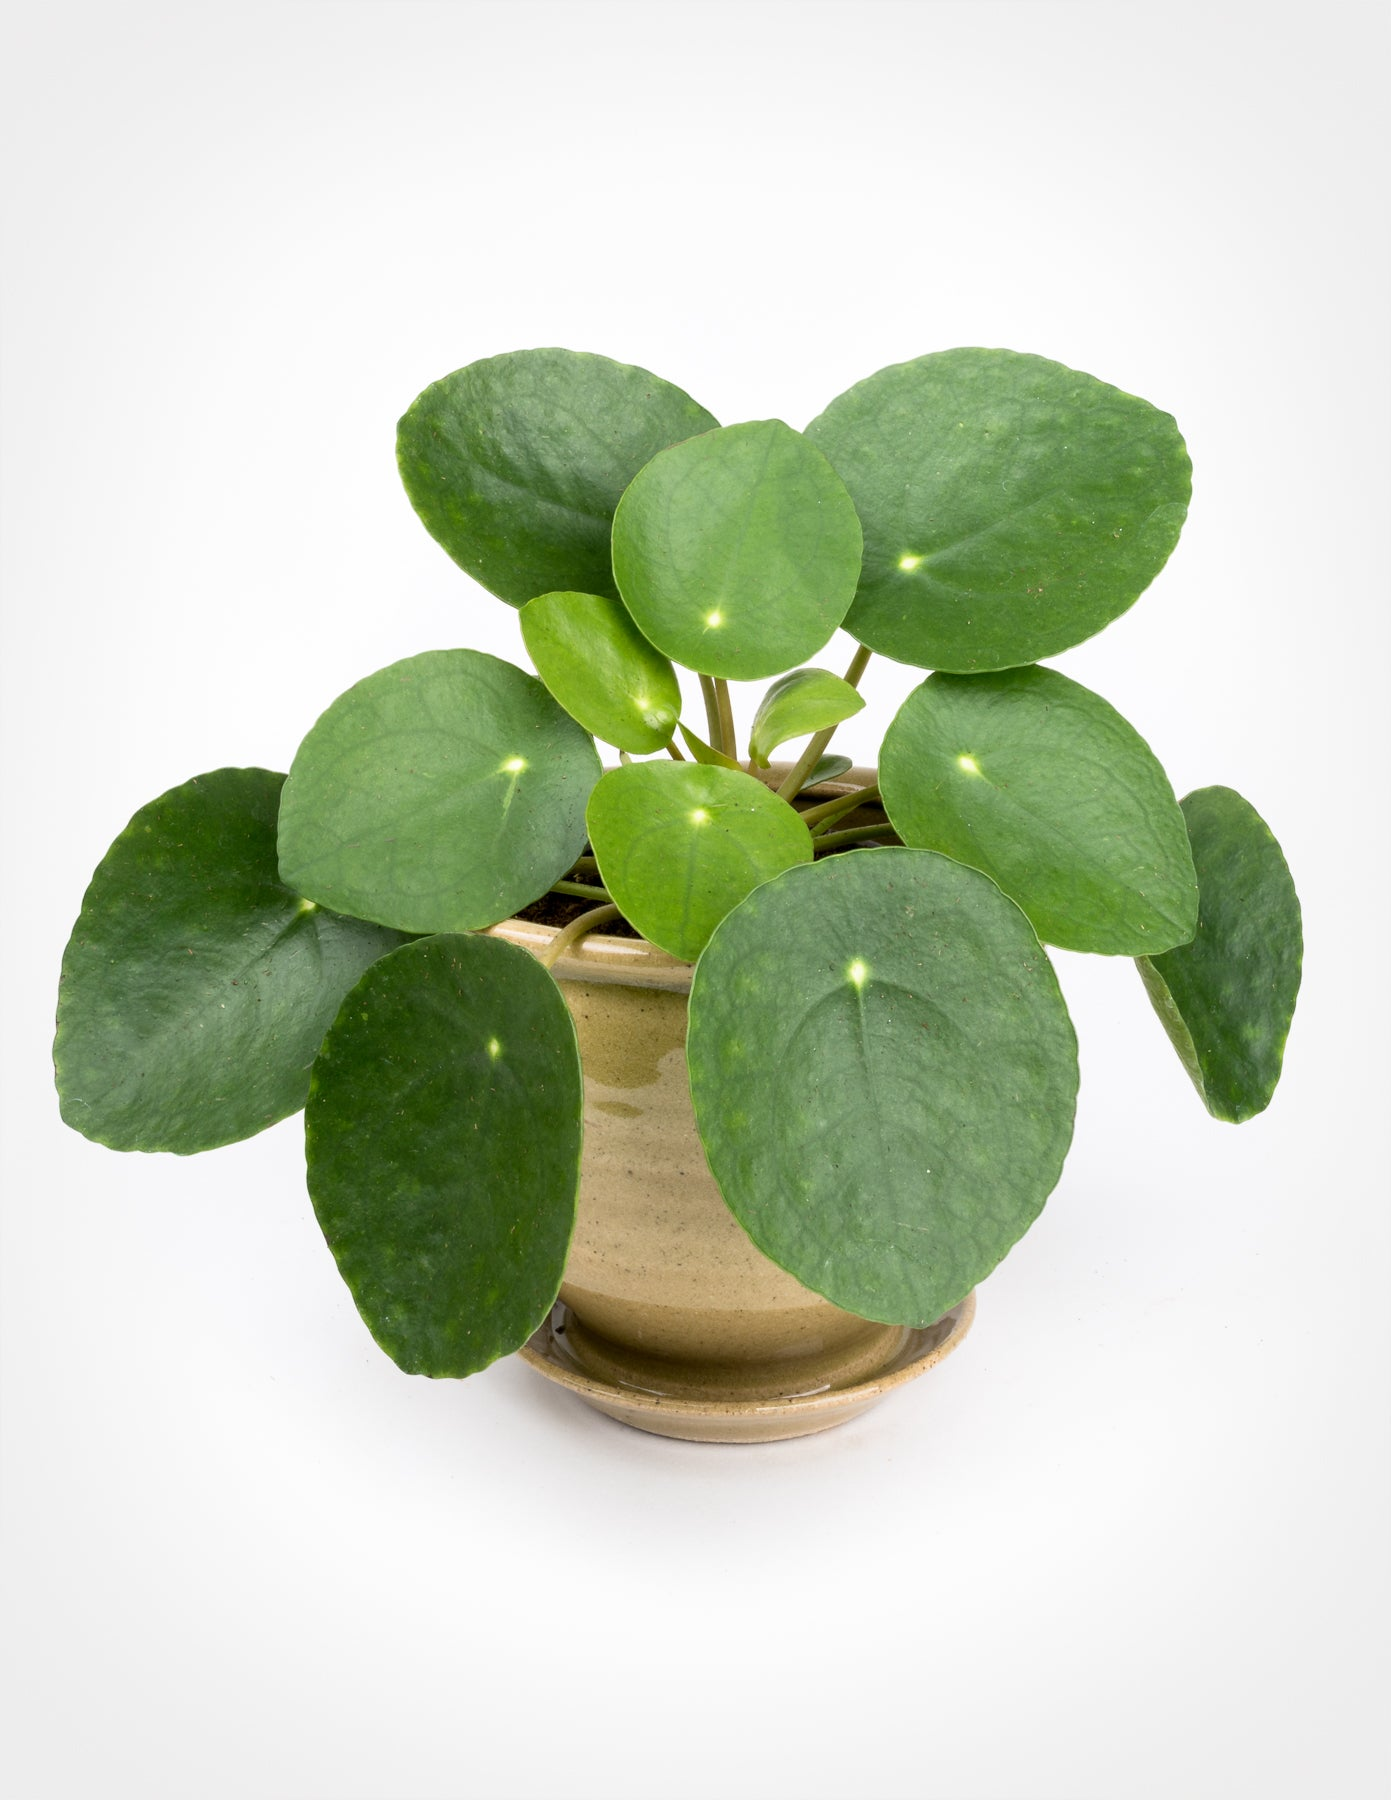 Online New Home Design Pilea Peperomioides Chinese Money Plant Pistils Nursery